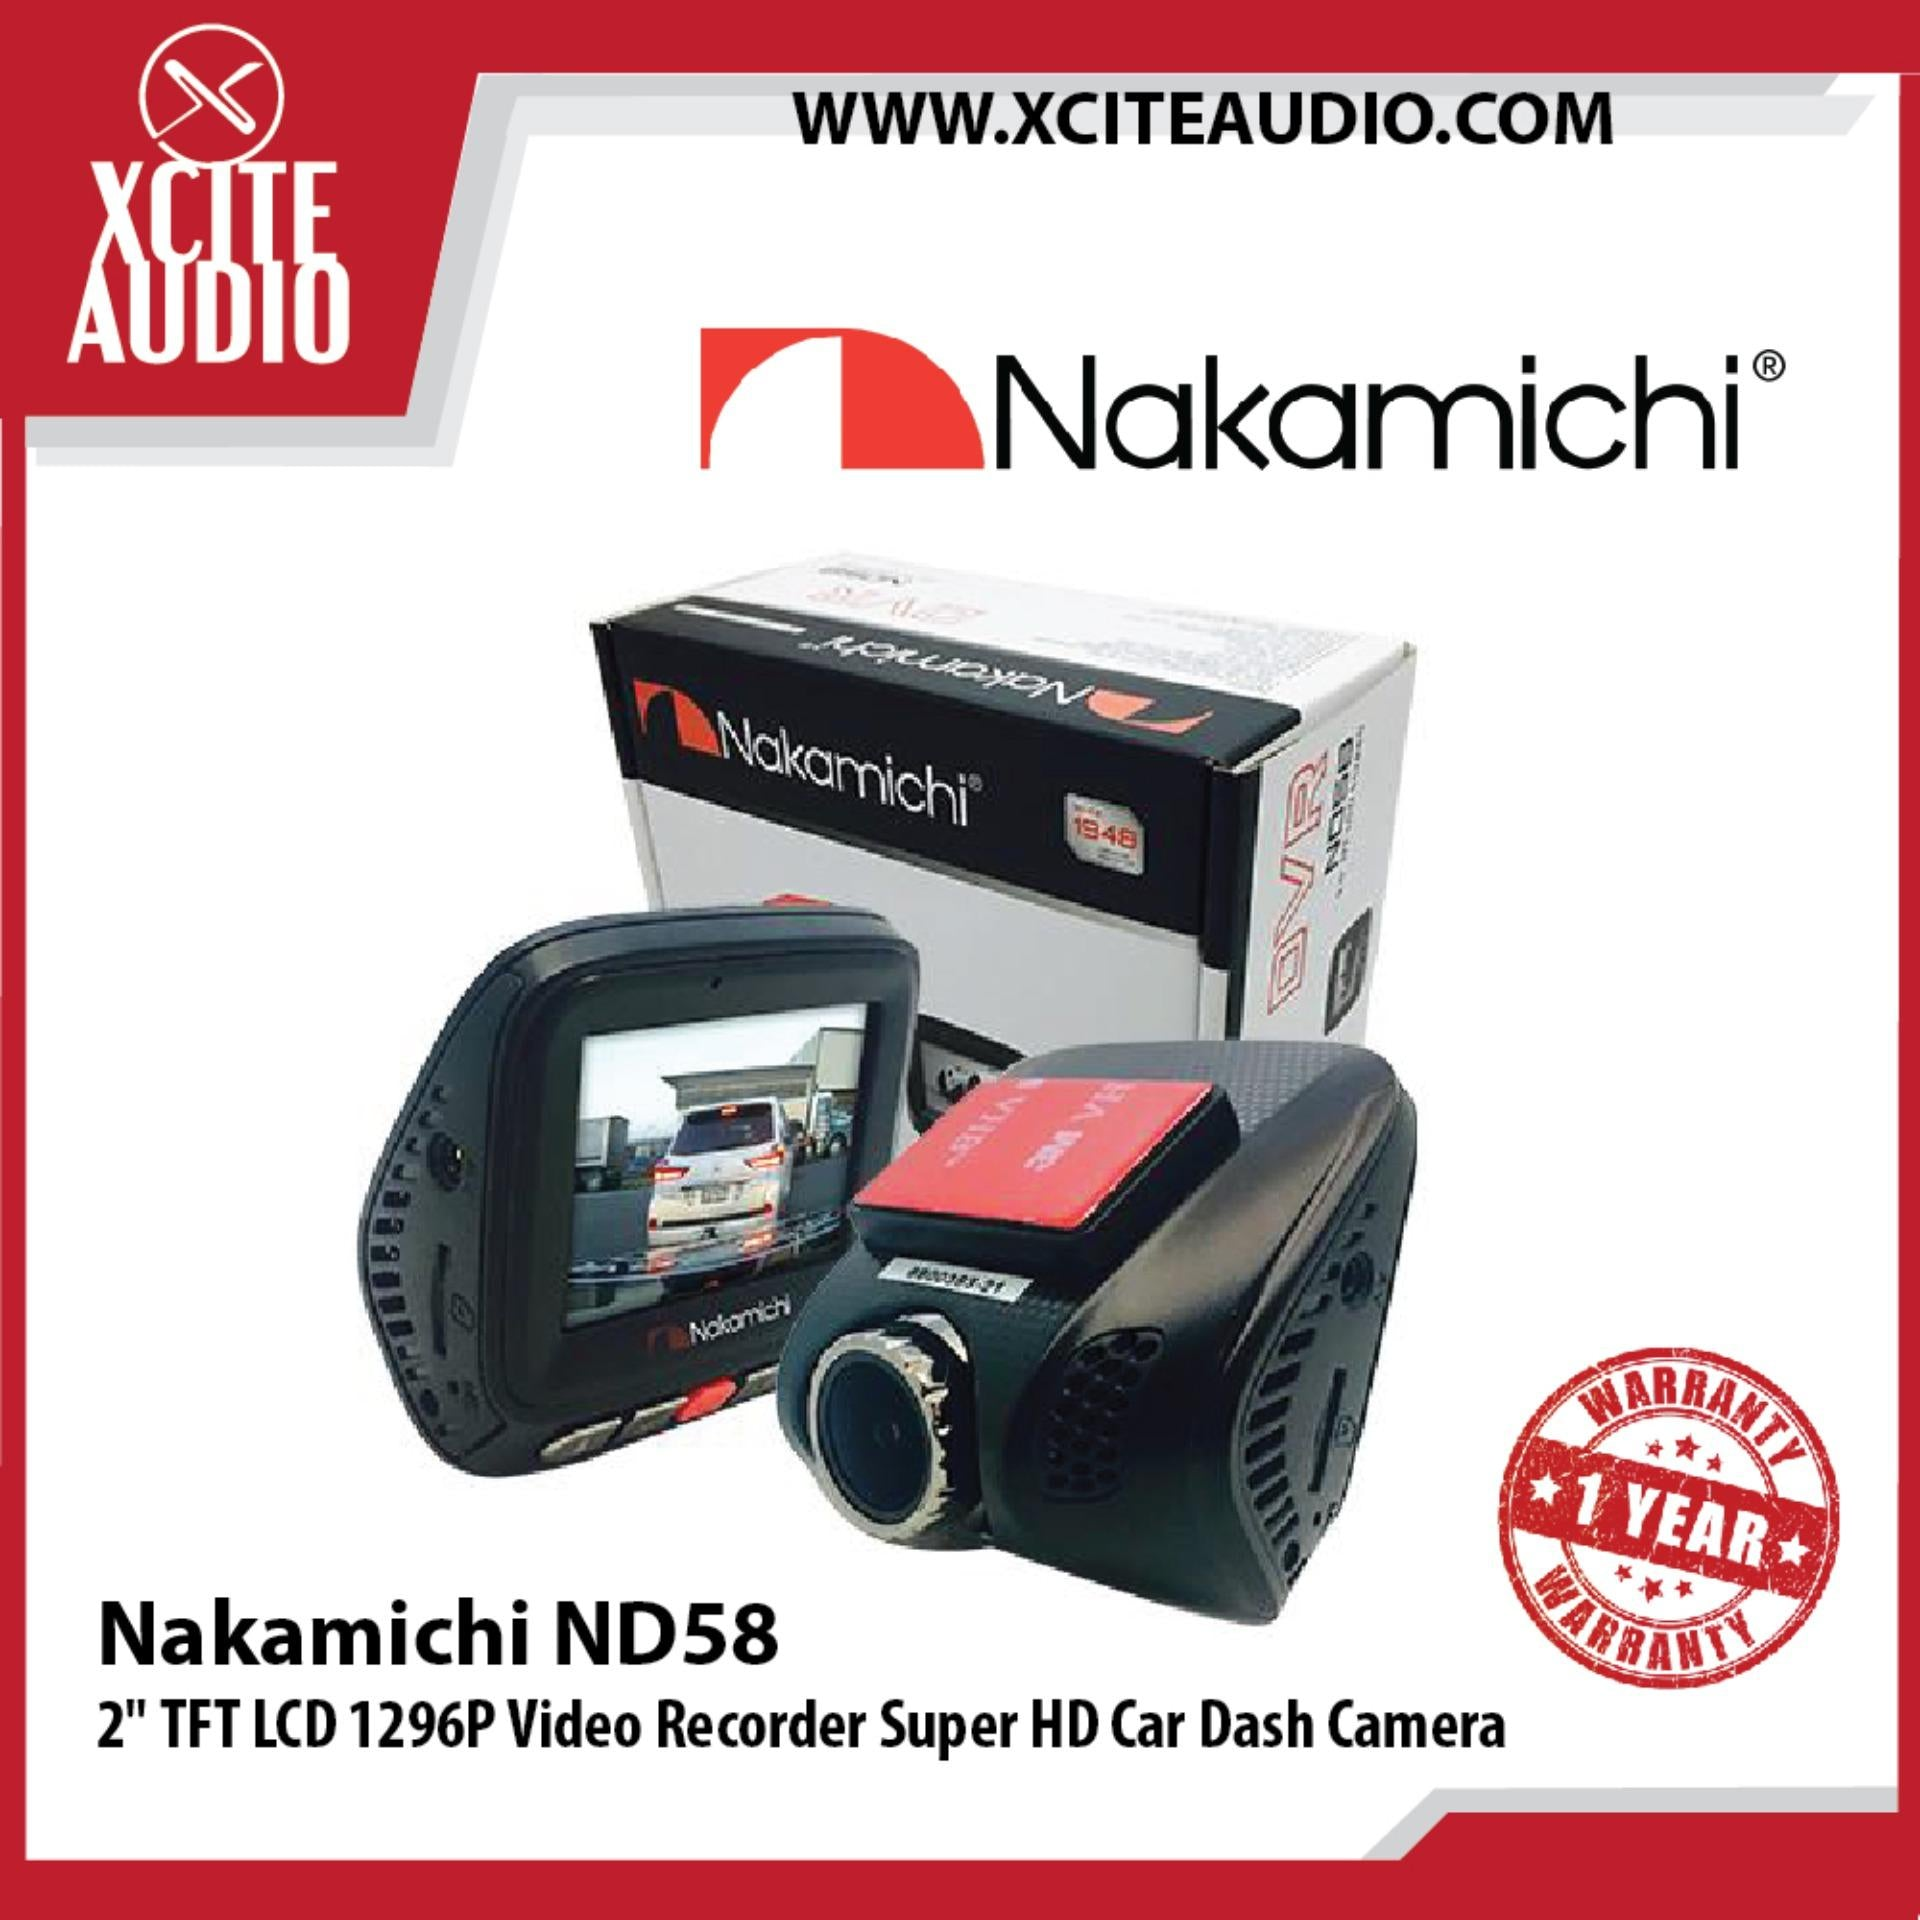 "Nakamichi ND58 2"" TFT LCD 1296P Video Recorder Super HD Car Dash Cam Camera"